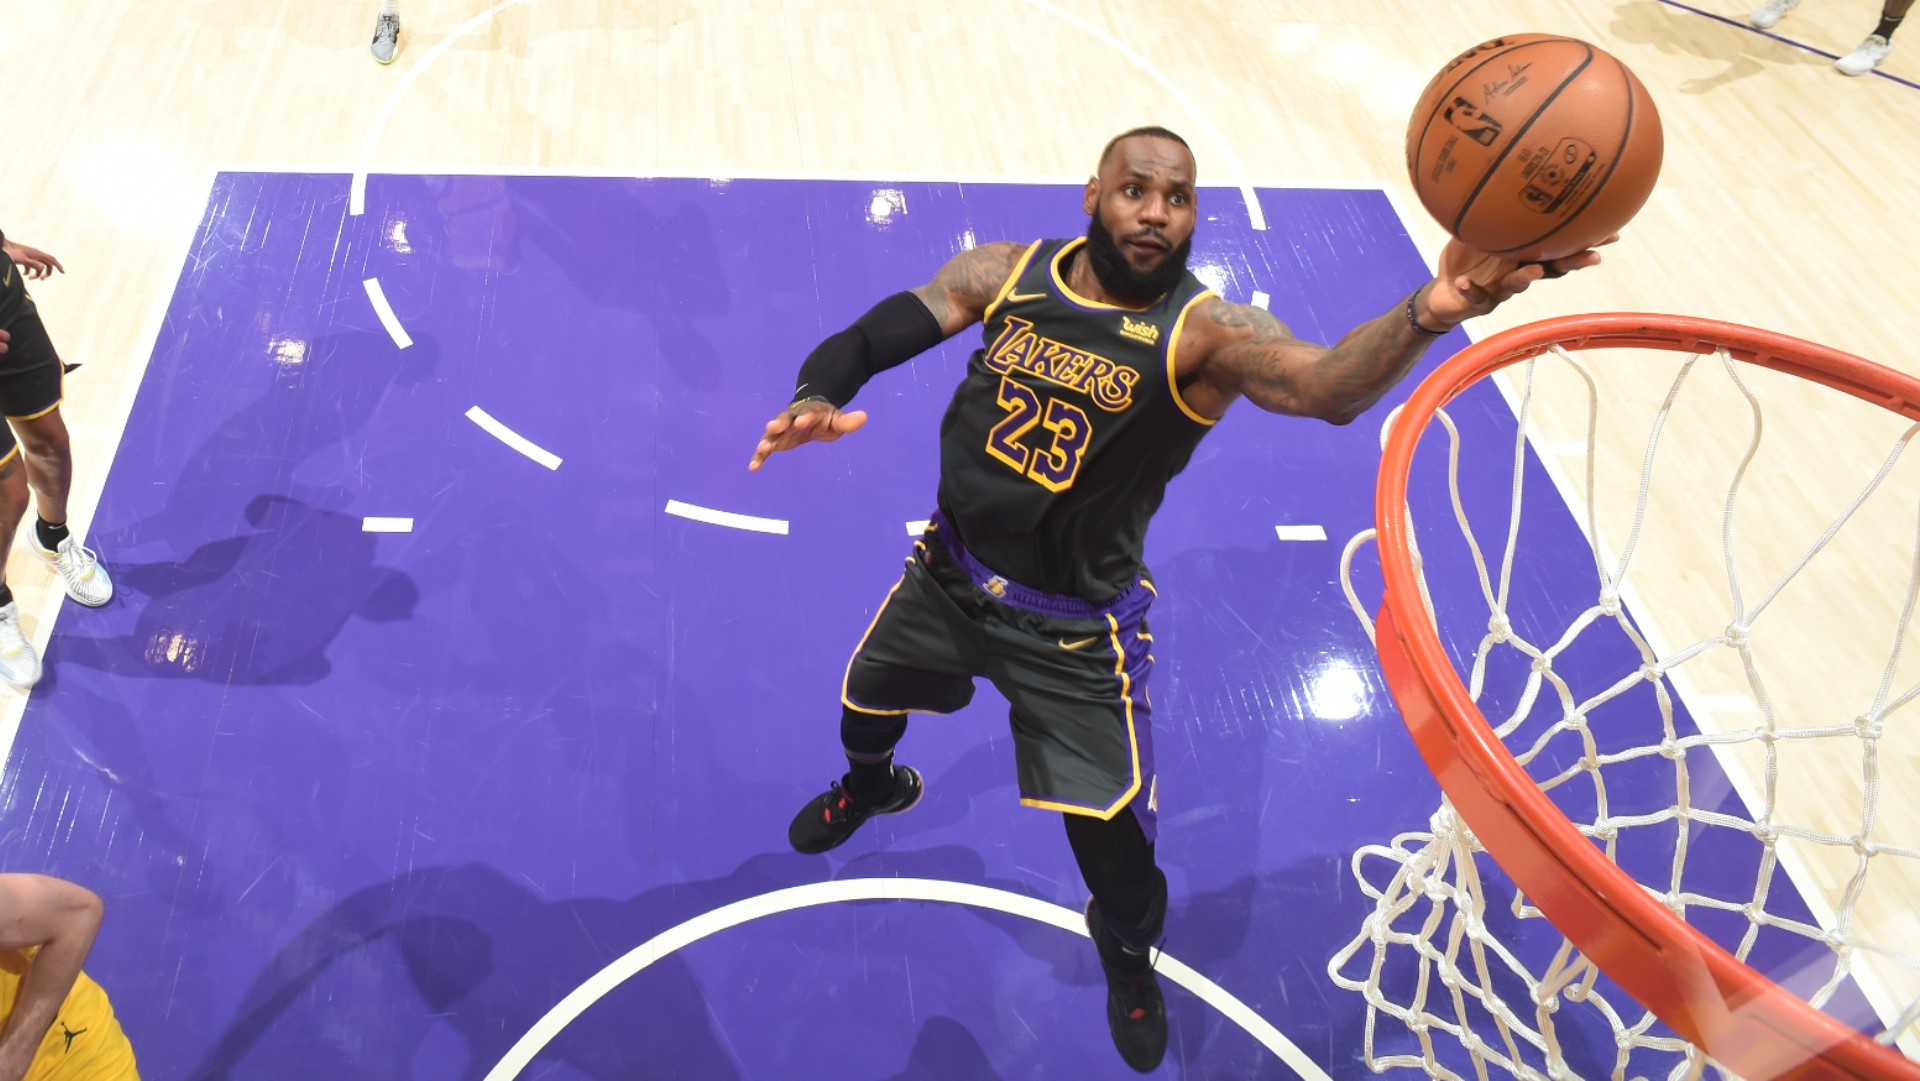 LeBron's Lakers snap skid after All-Star break, Embiid injury overshadows 76ers win